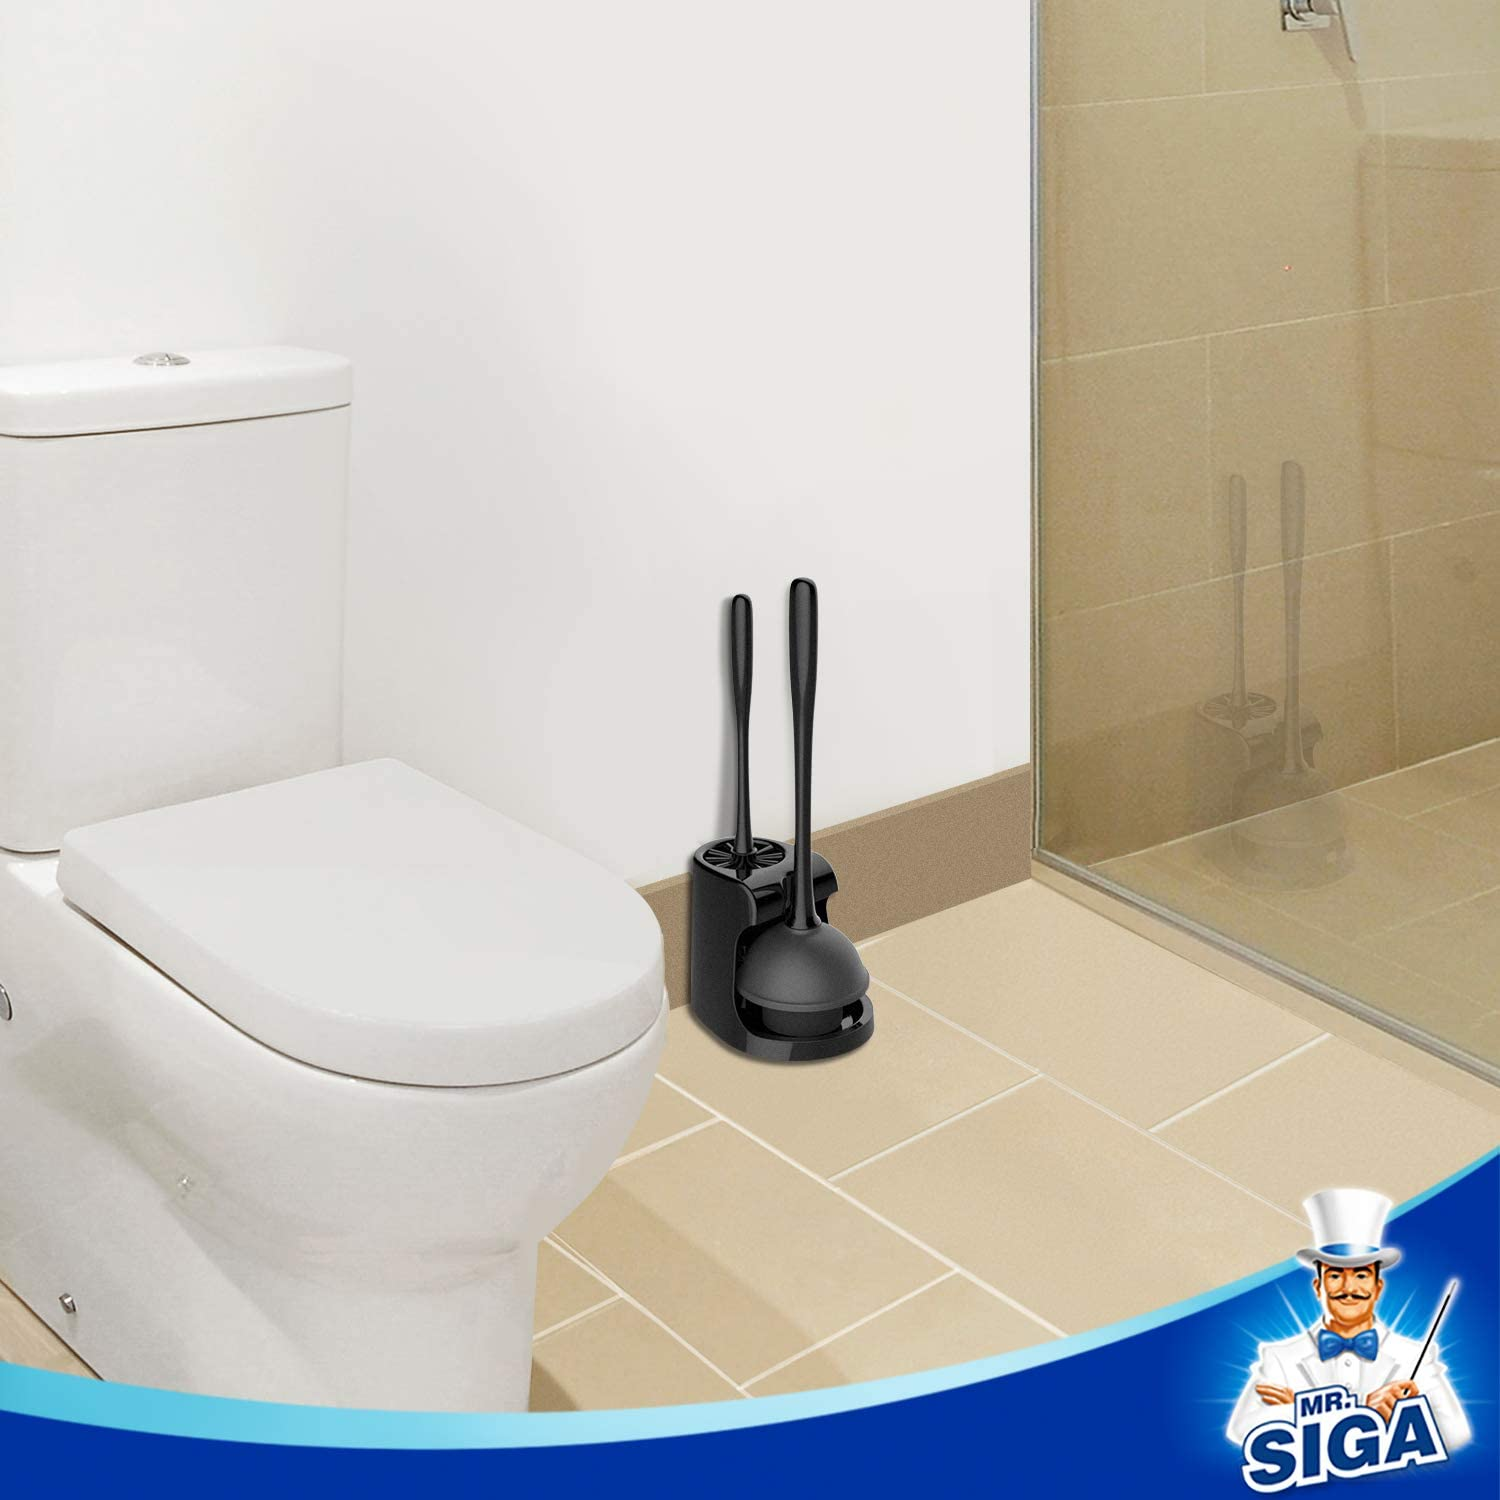 MR.SIGA Toilet Plunger and Bowl Brush Combo for Bathroom Cleaning Black